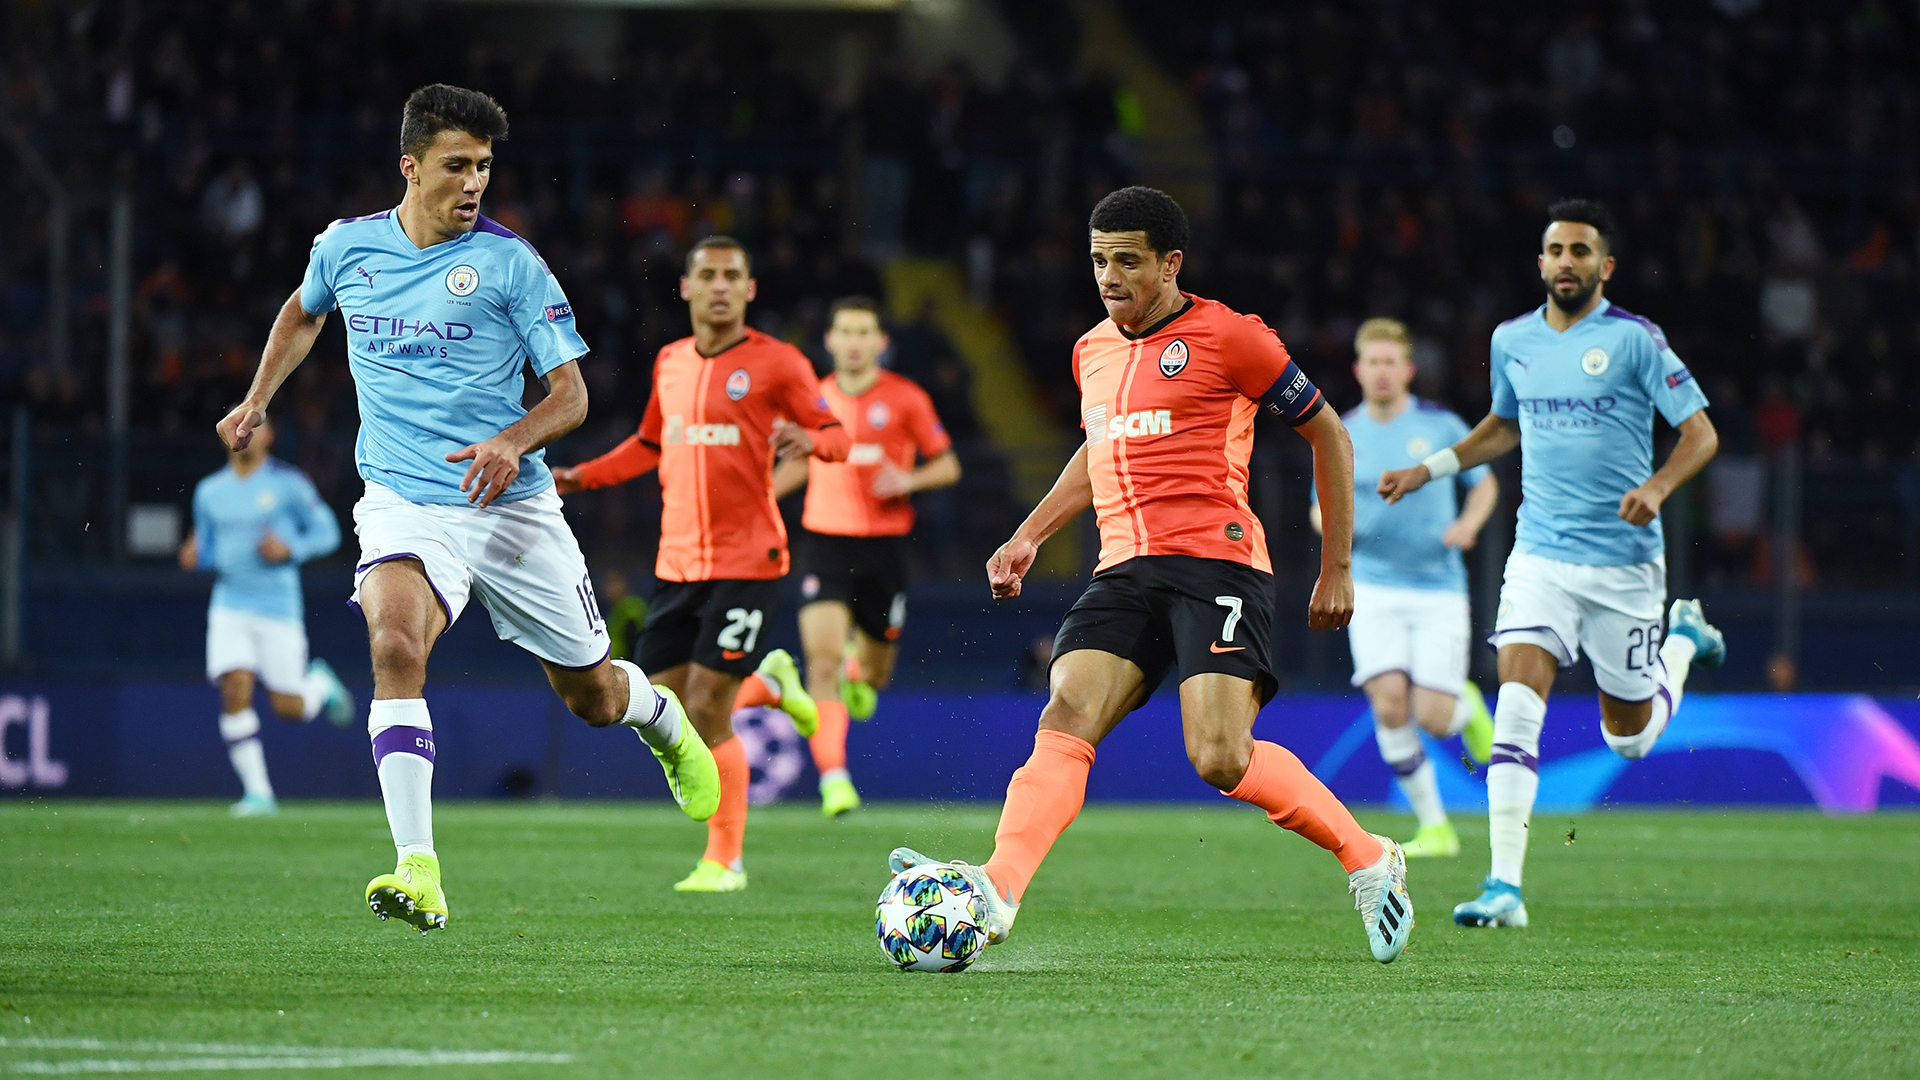 https://shakhtar.com/~/media/fcsd/news/2019/september/19_news/19_shakhtar-v-man-city/gal/dsc_9879.jpg?1568896886570